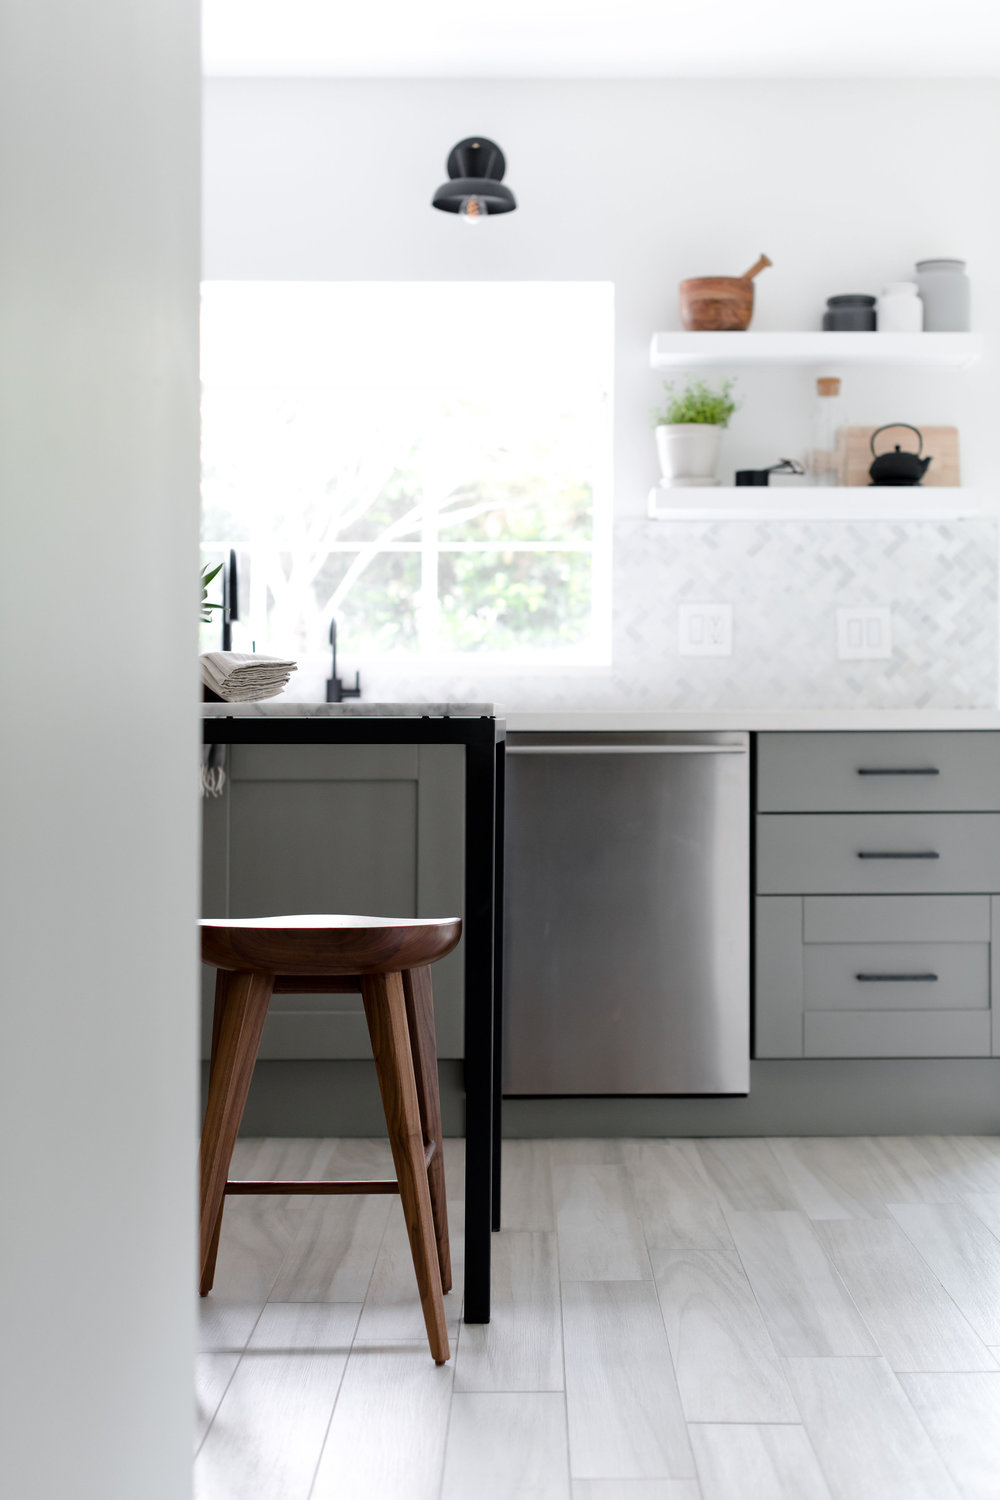 freestanding marble kitchen island in modern grey kitchen - the habitat collective - project casinha linda